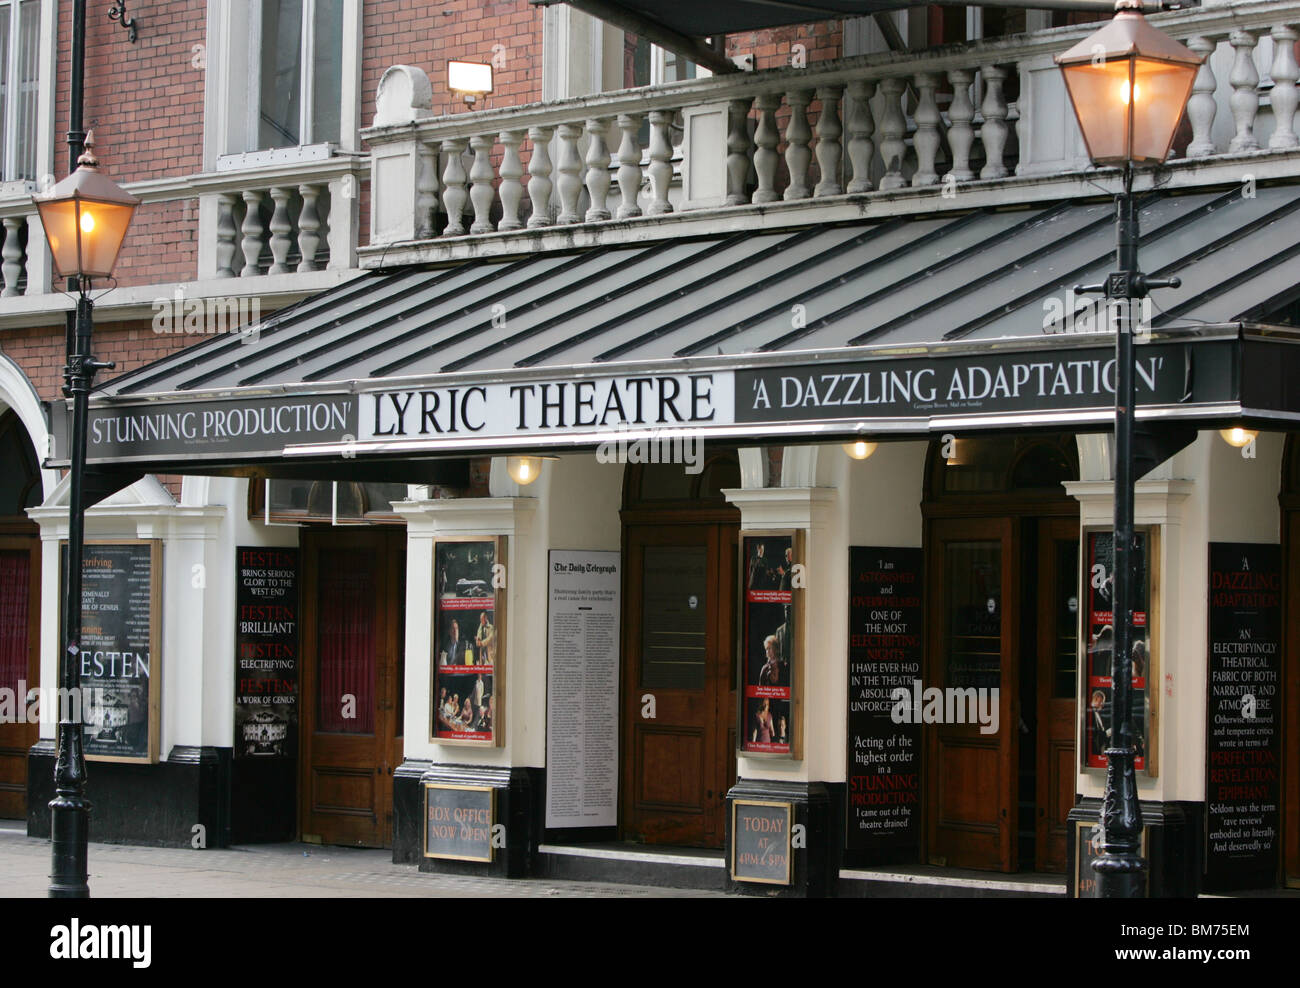 The Lyric Theatre, London - Stock Image